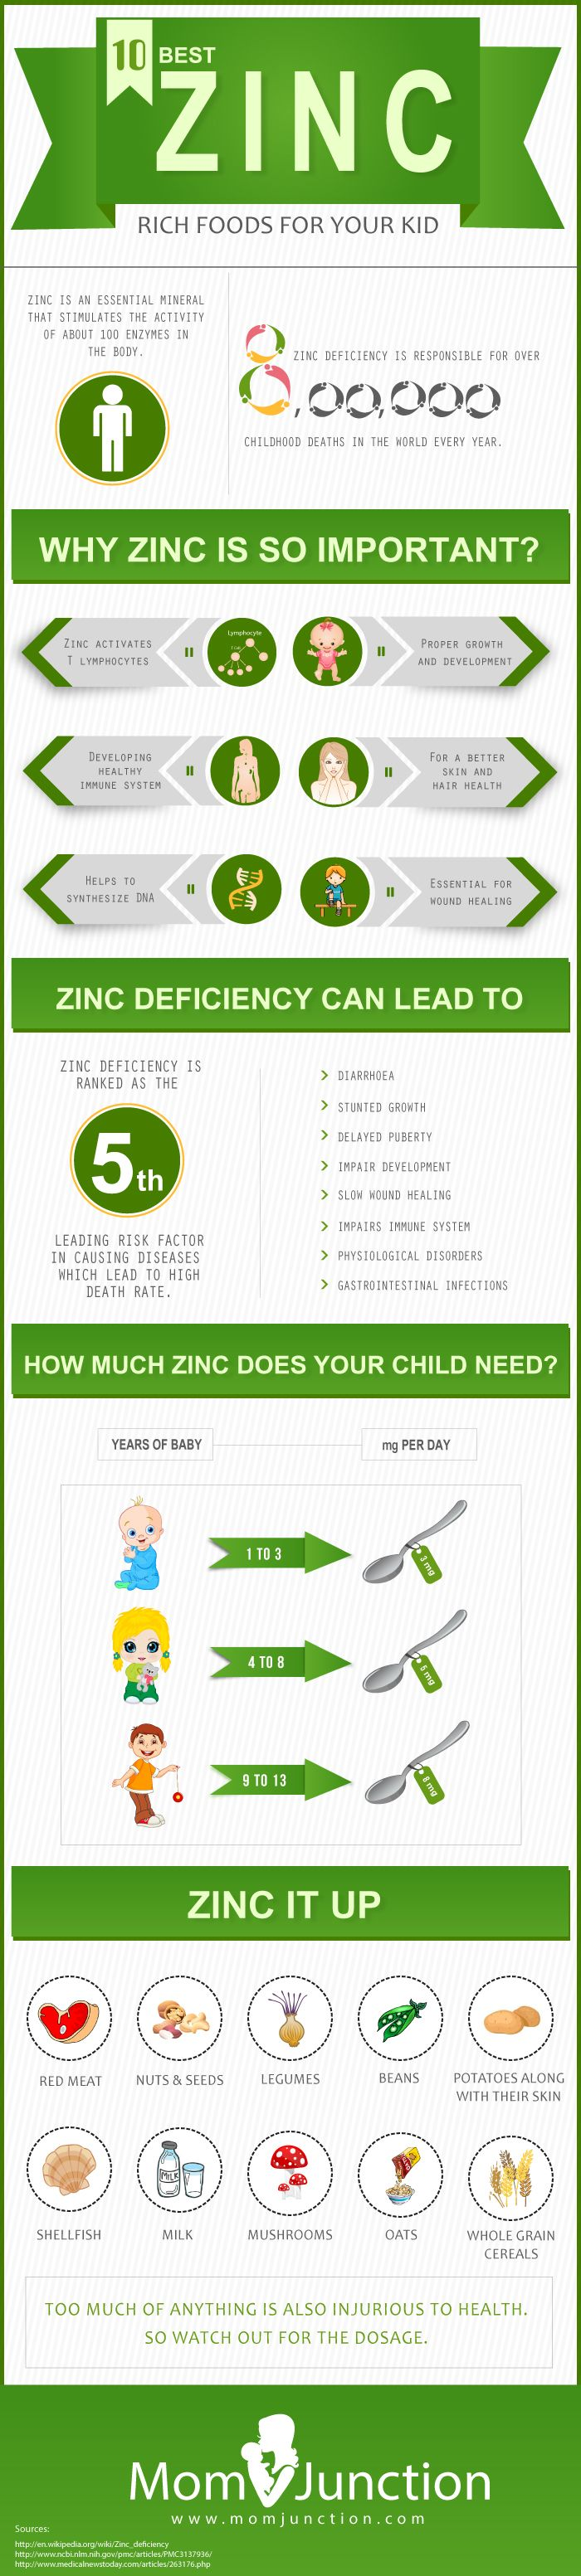 8 Best Zinc Rich Foods For Kids Plays, Keys and Kid